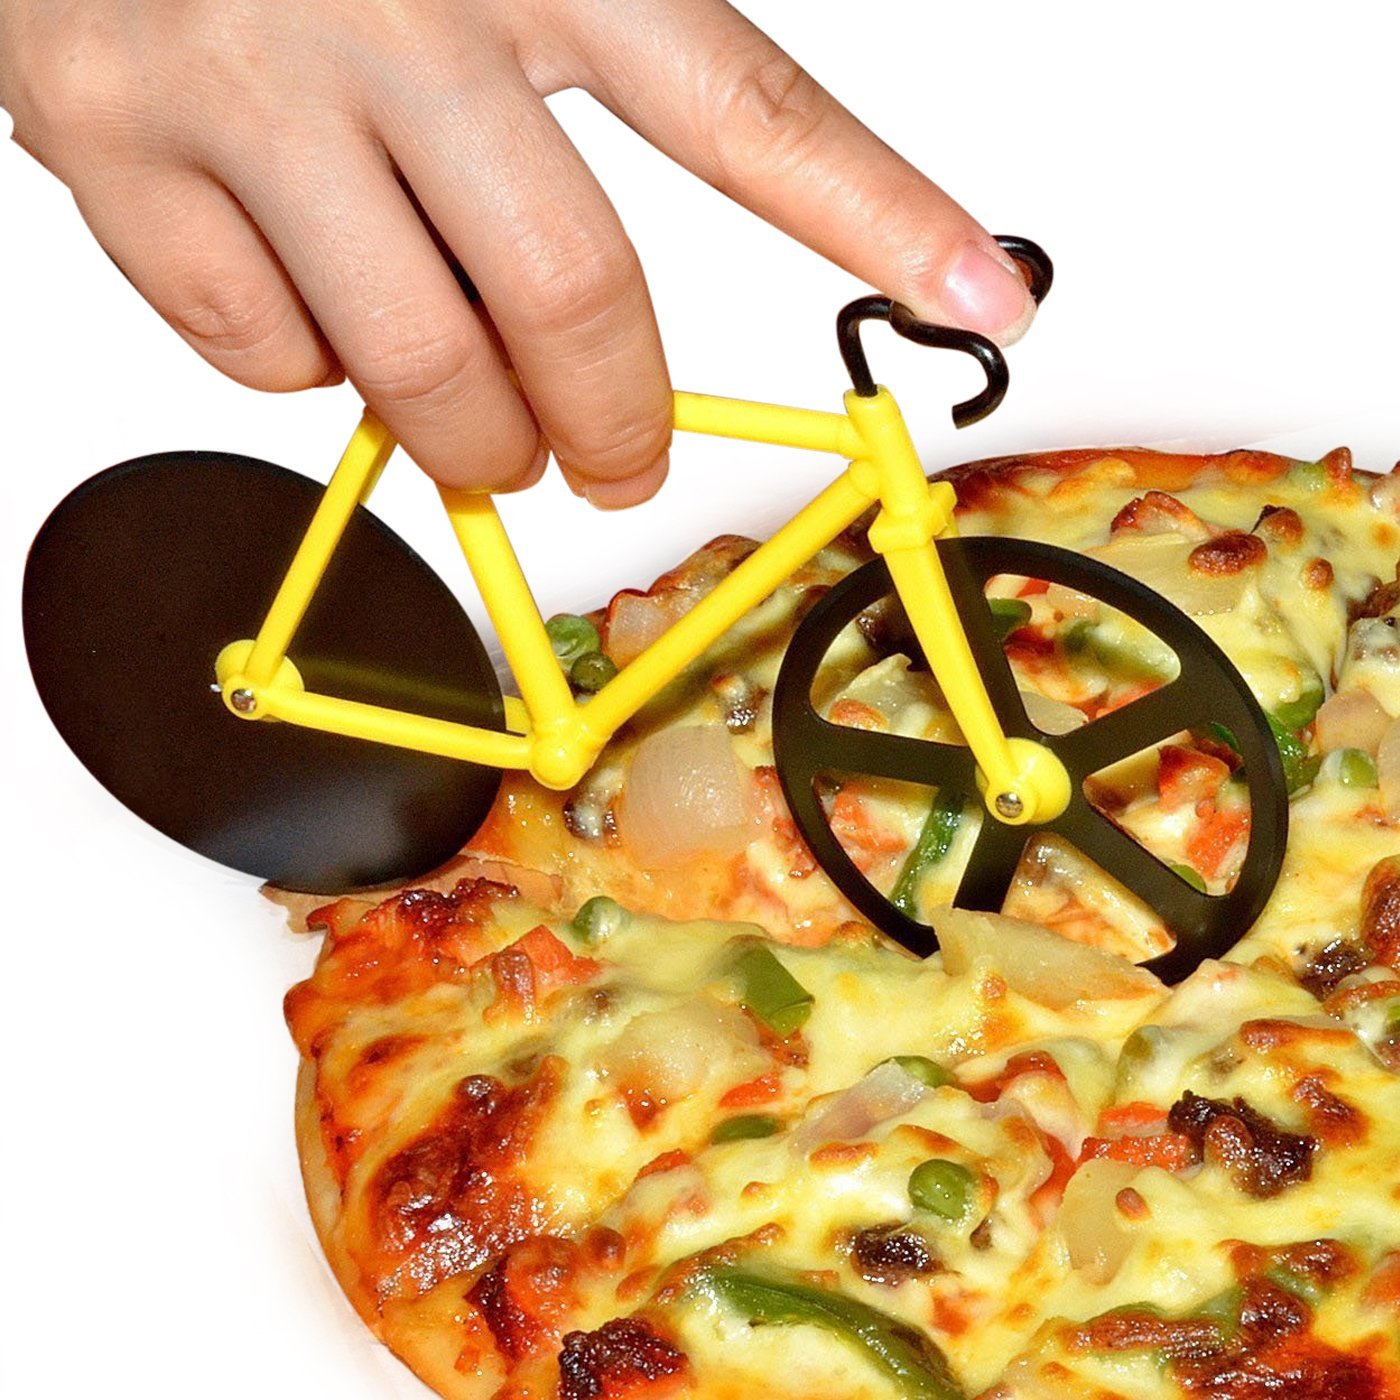 0649 stainless steel Bicycle shape Pizza cutter